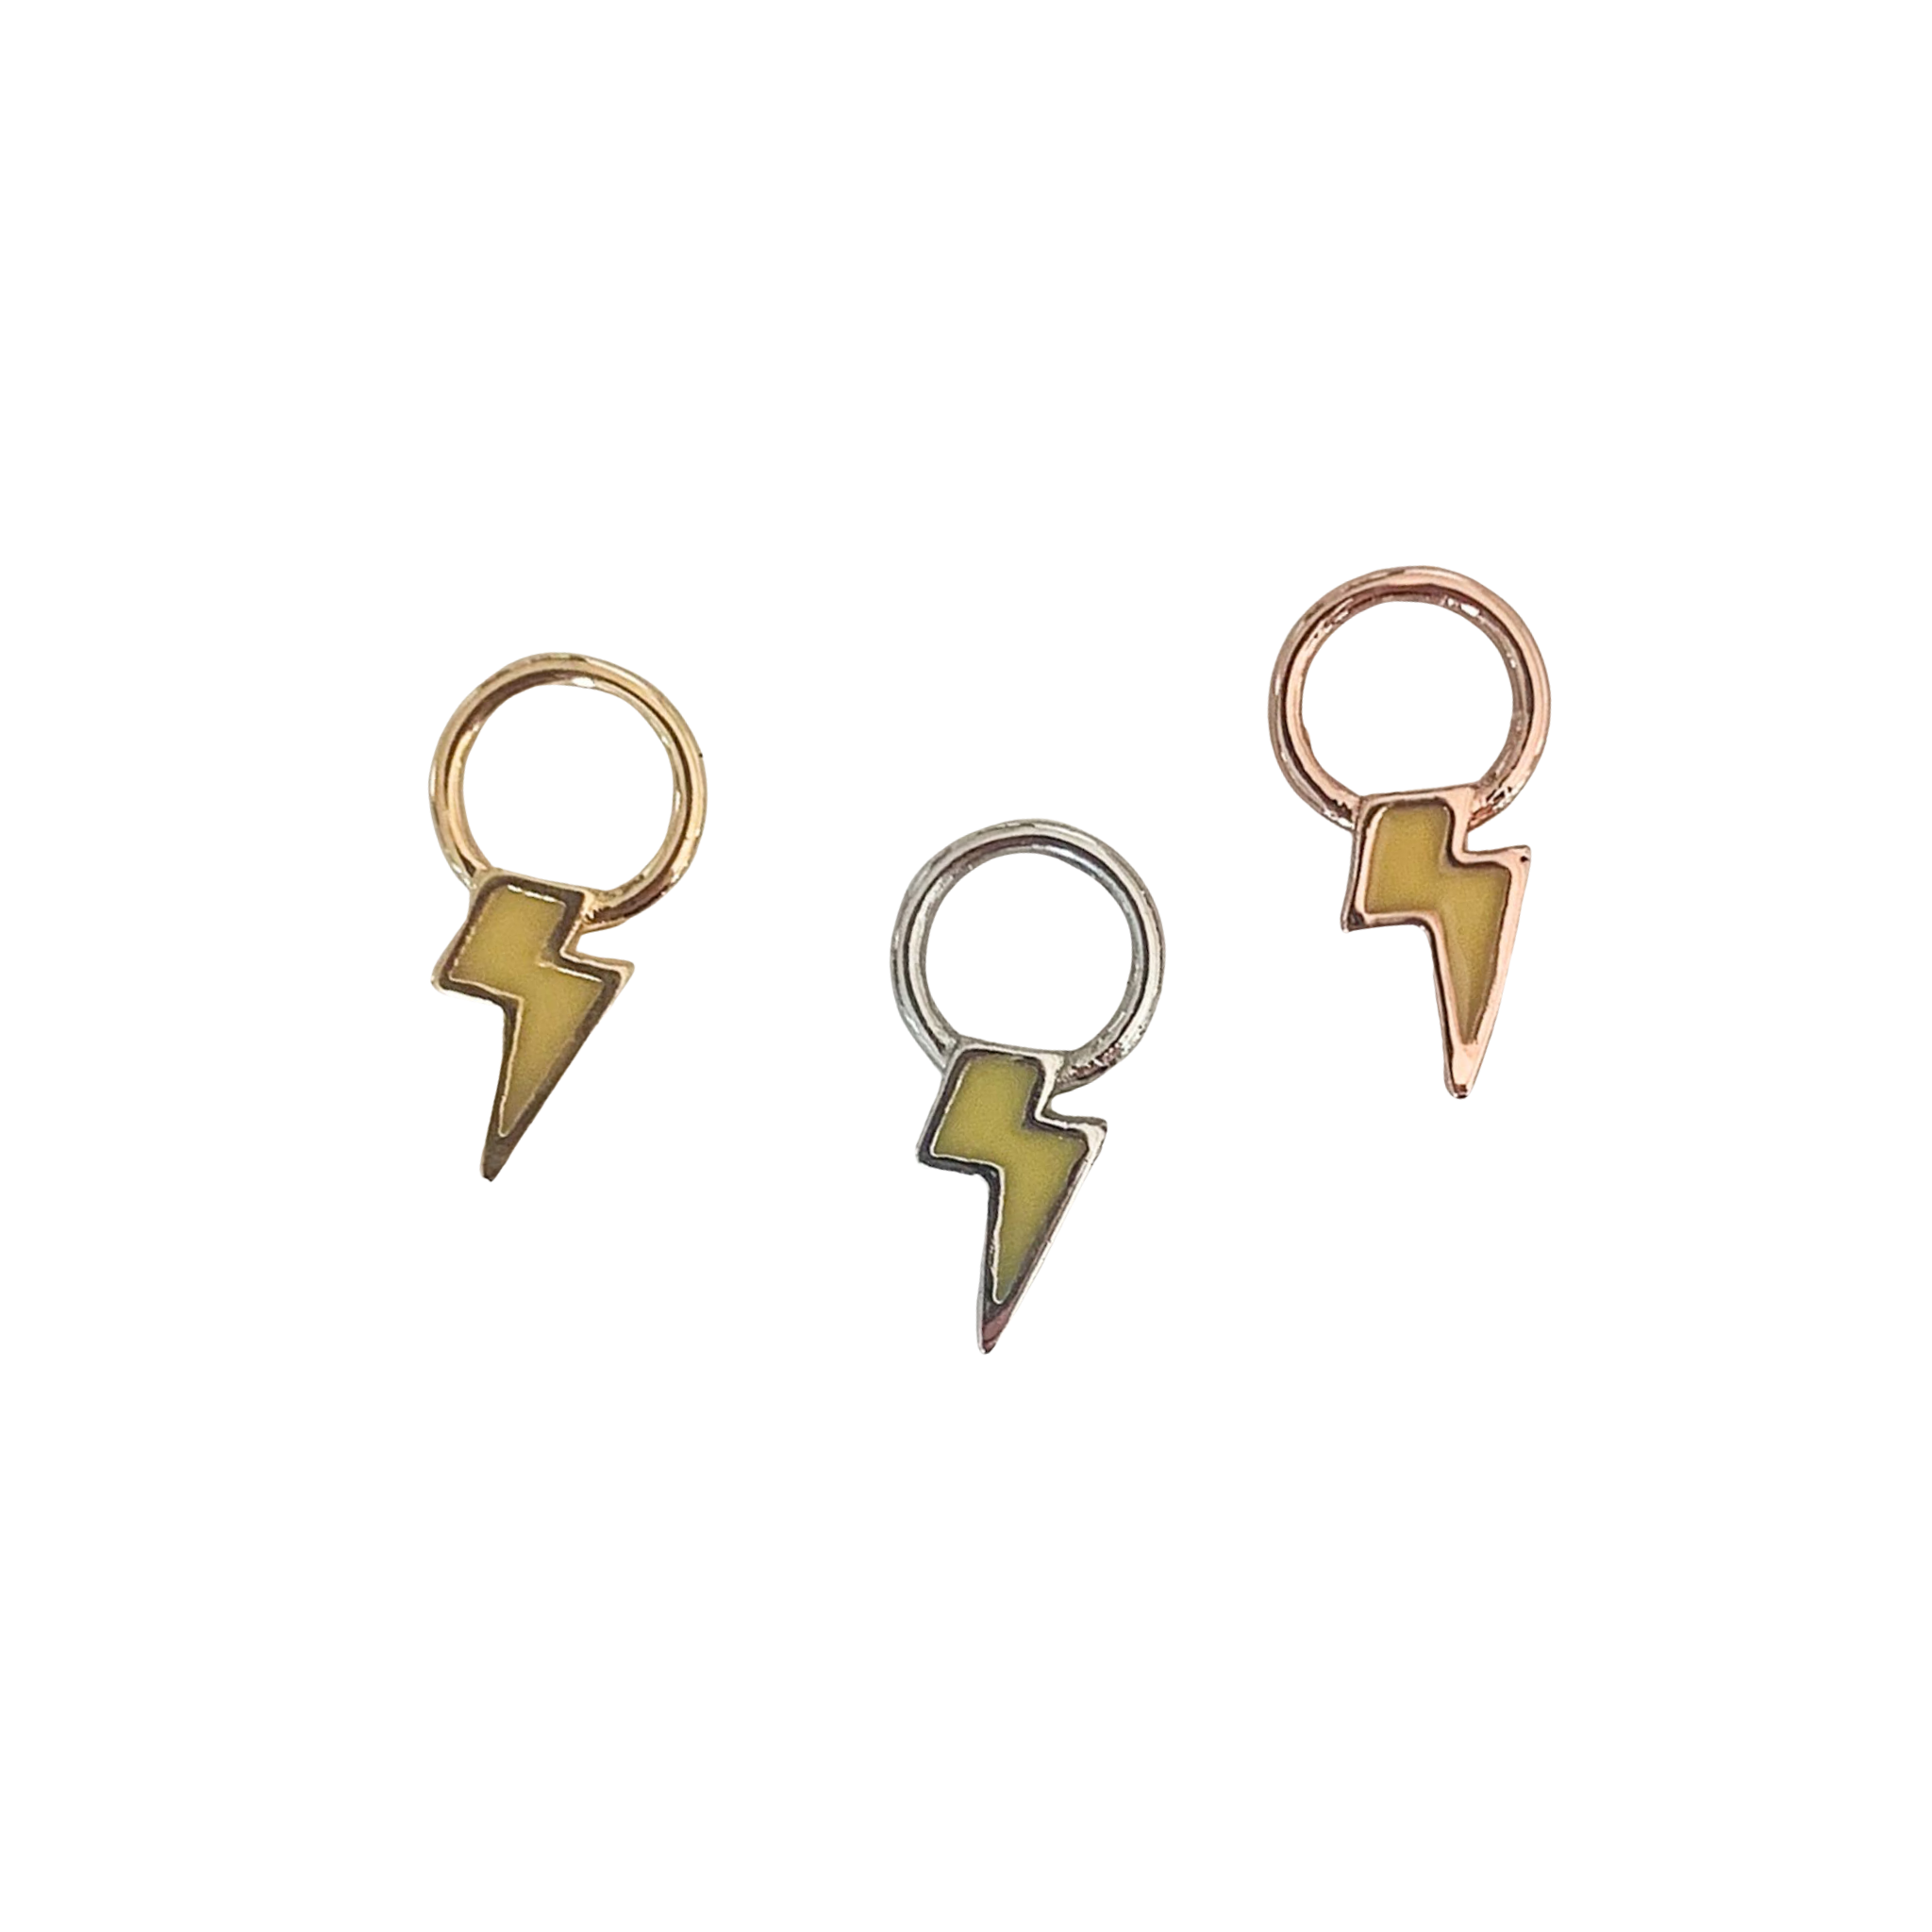 Emme Lighting Bolt Charm (Gold, Silver and Rose Gold)